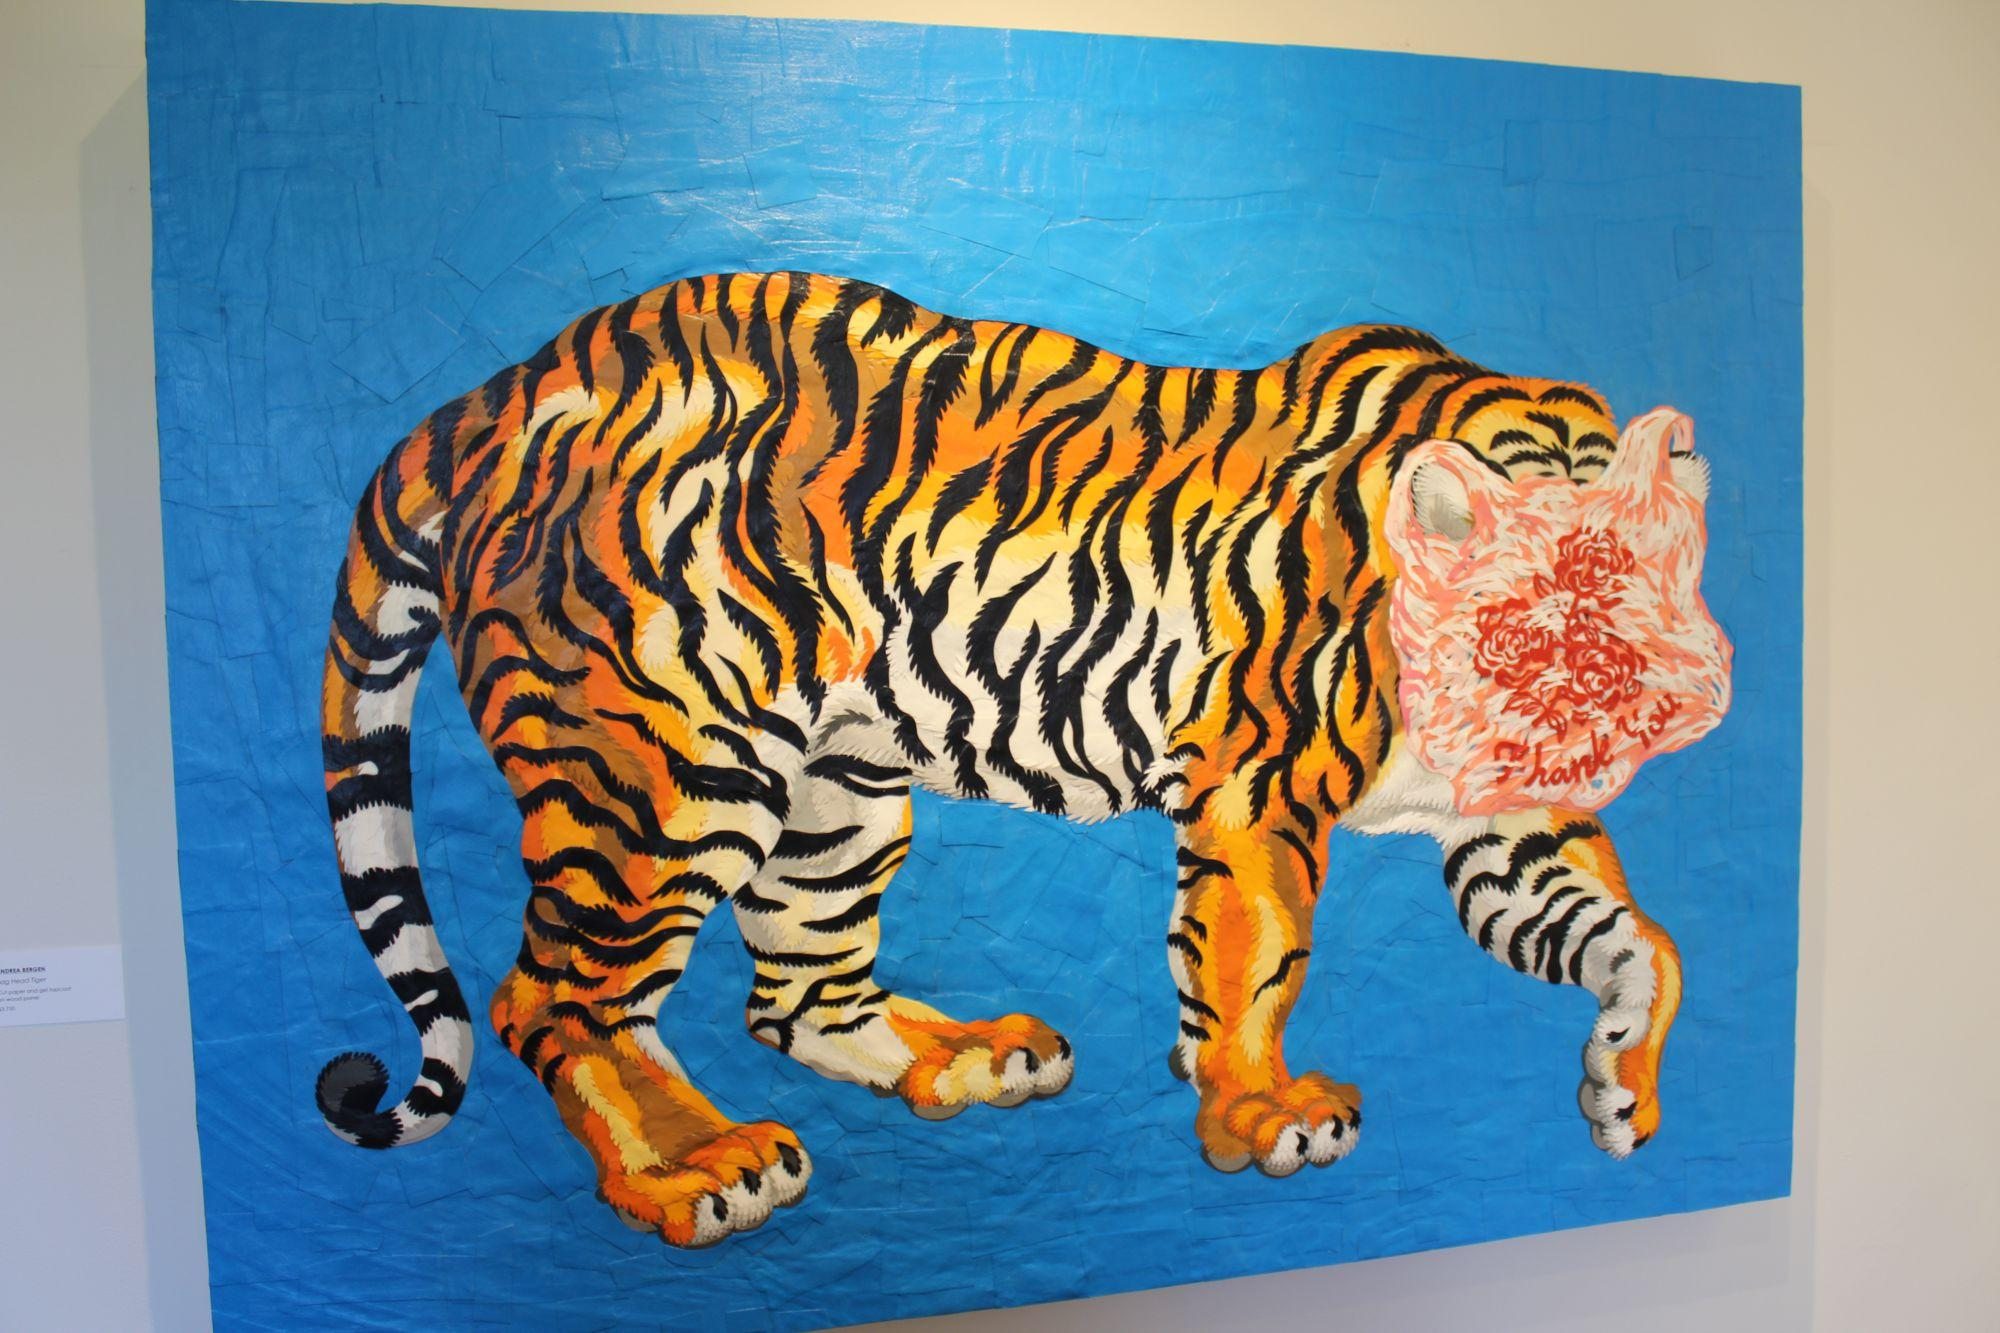 Andrea+Bergen%E2%80%99s+%E2%80%9CBag+Head+Tiger%E2%80%9D+is+made+of+cut+paper+and+gel+topcoat+on+wood+panel